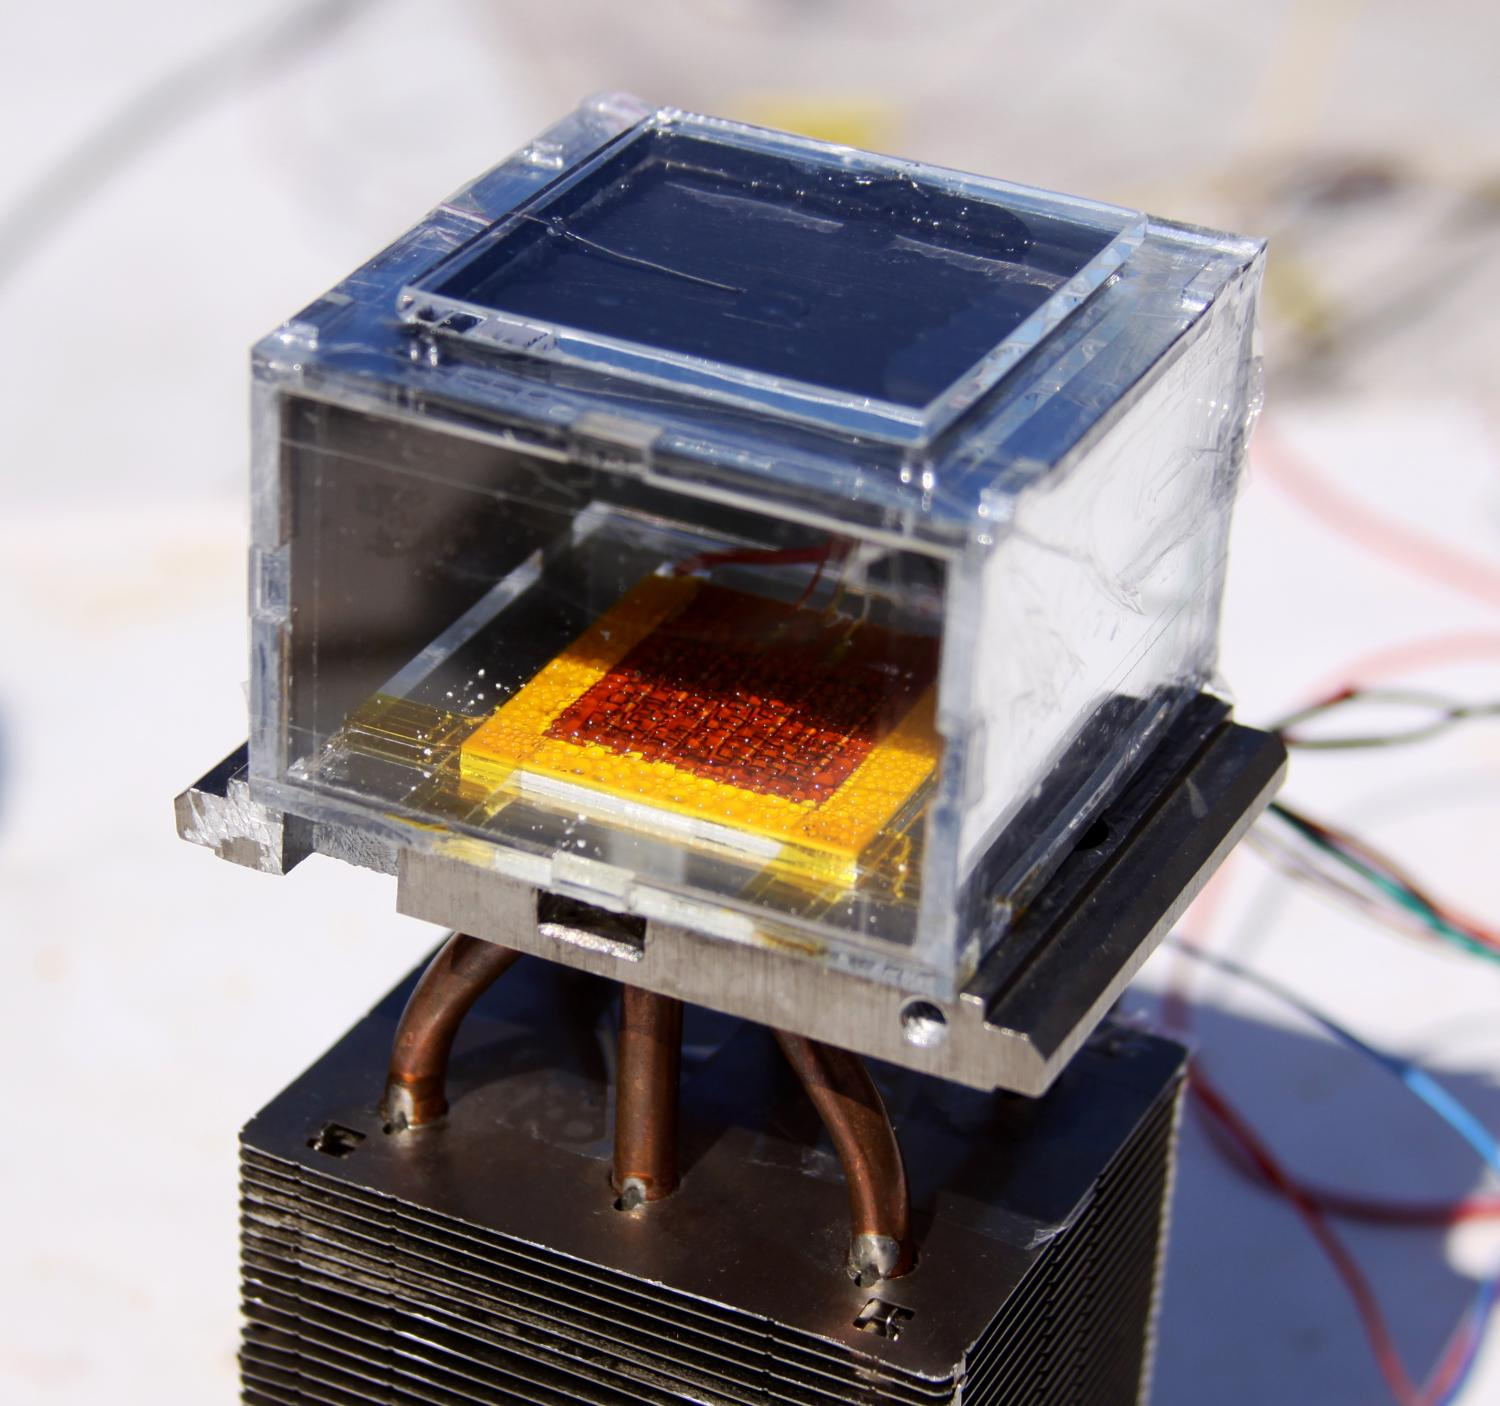 Solar-powered device harvest water from dry air